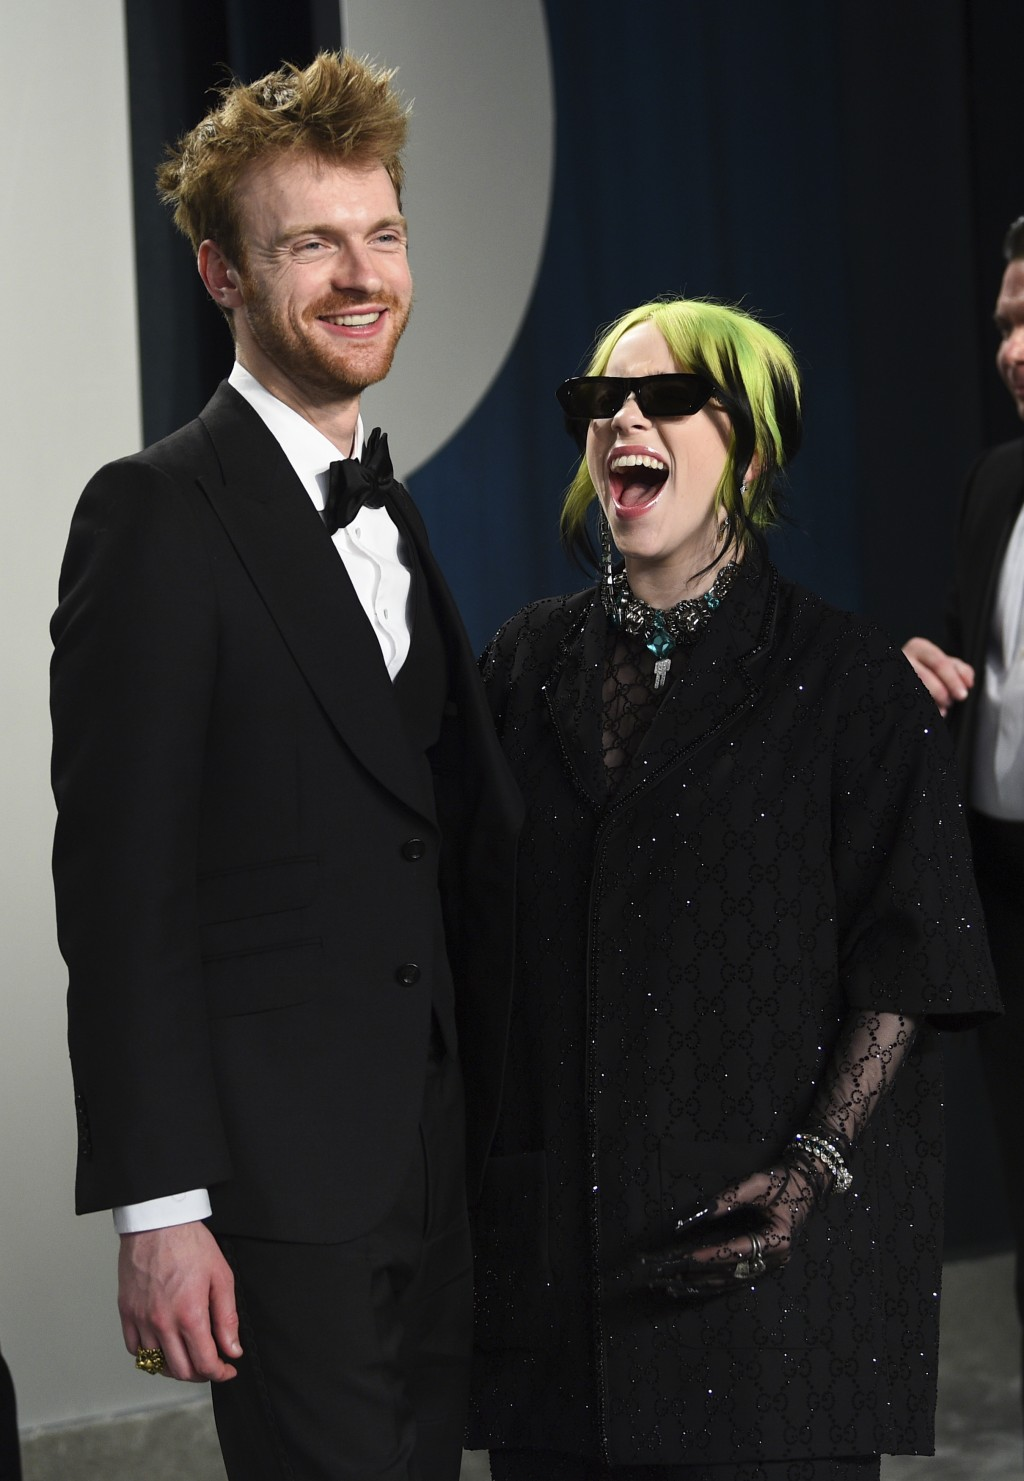 FILE - Finneas O'Connell, left and Billie Eilish arrive at the Vanity Fair Oscar Party in Beverly Hills, Calif. on Feb. 9, 2020. O'Connell has been na...